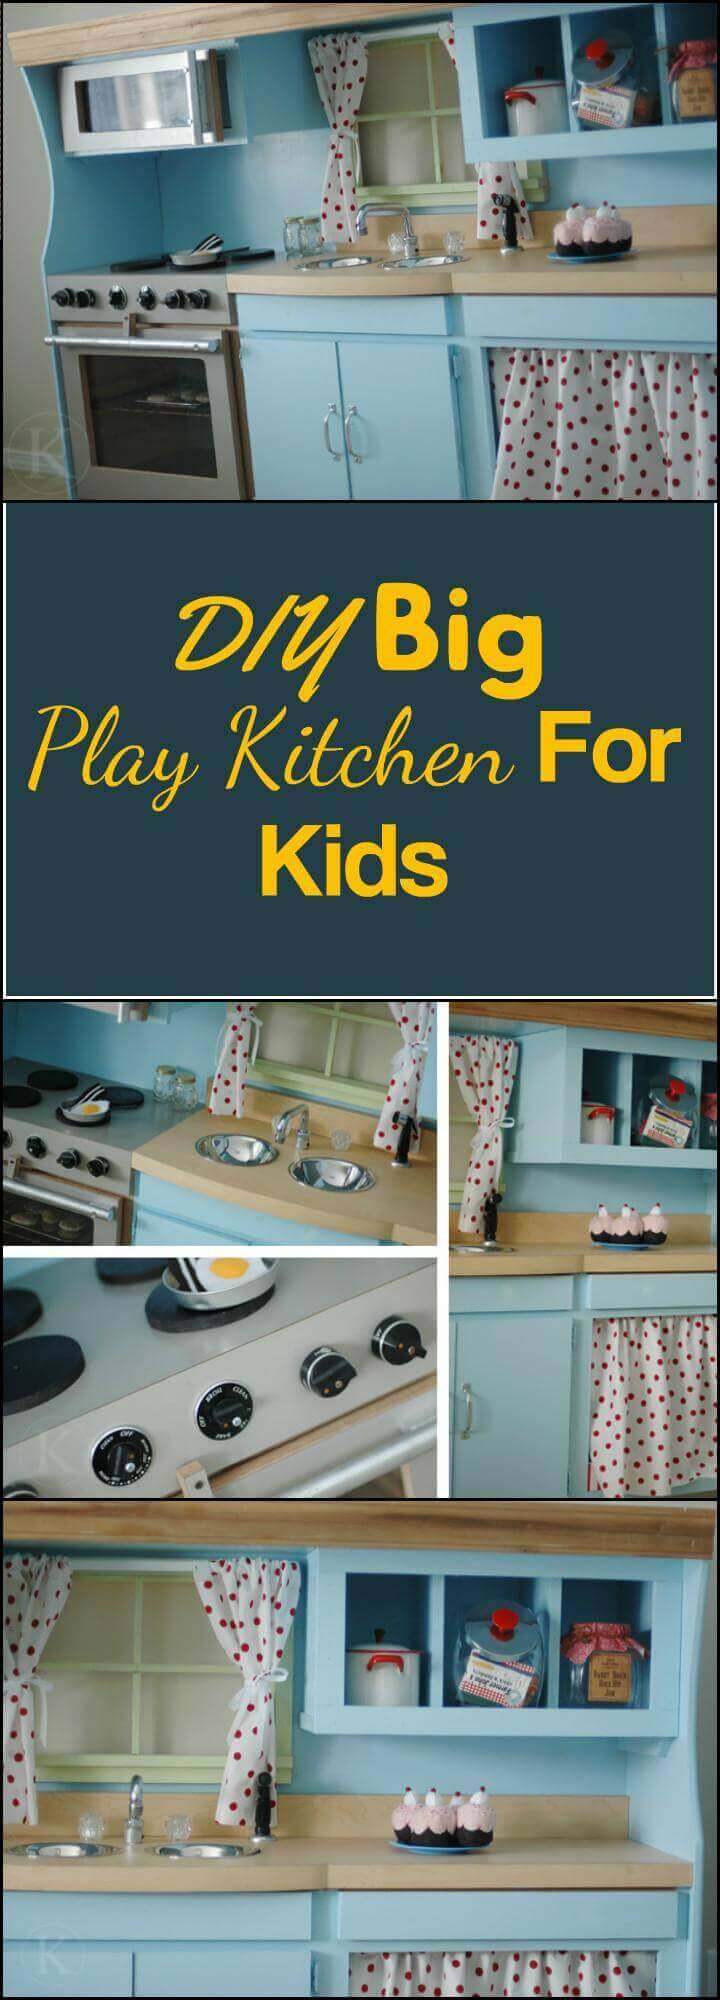 DIY handcrafted easy play kitchen